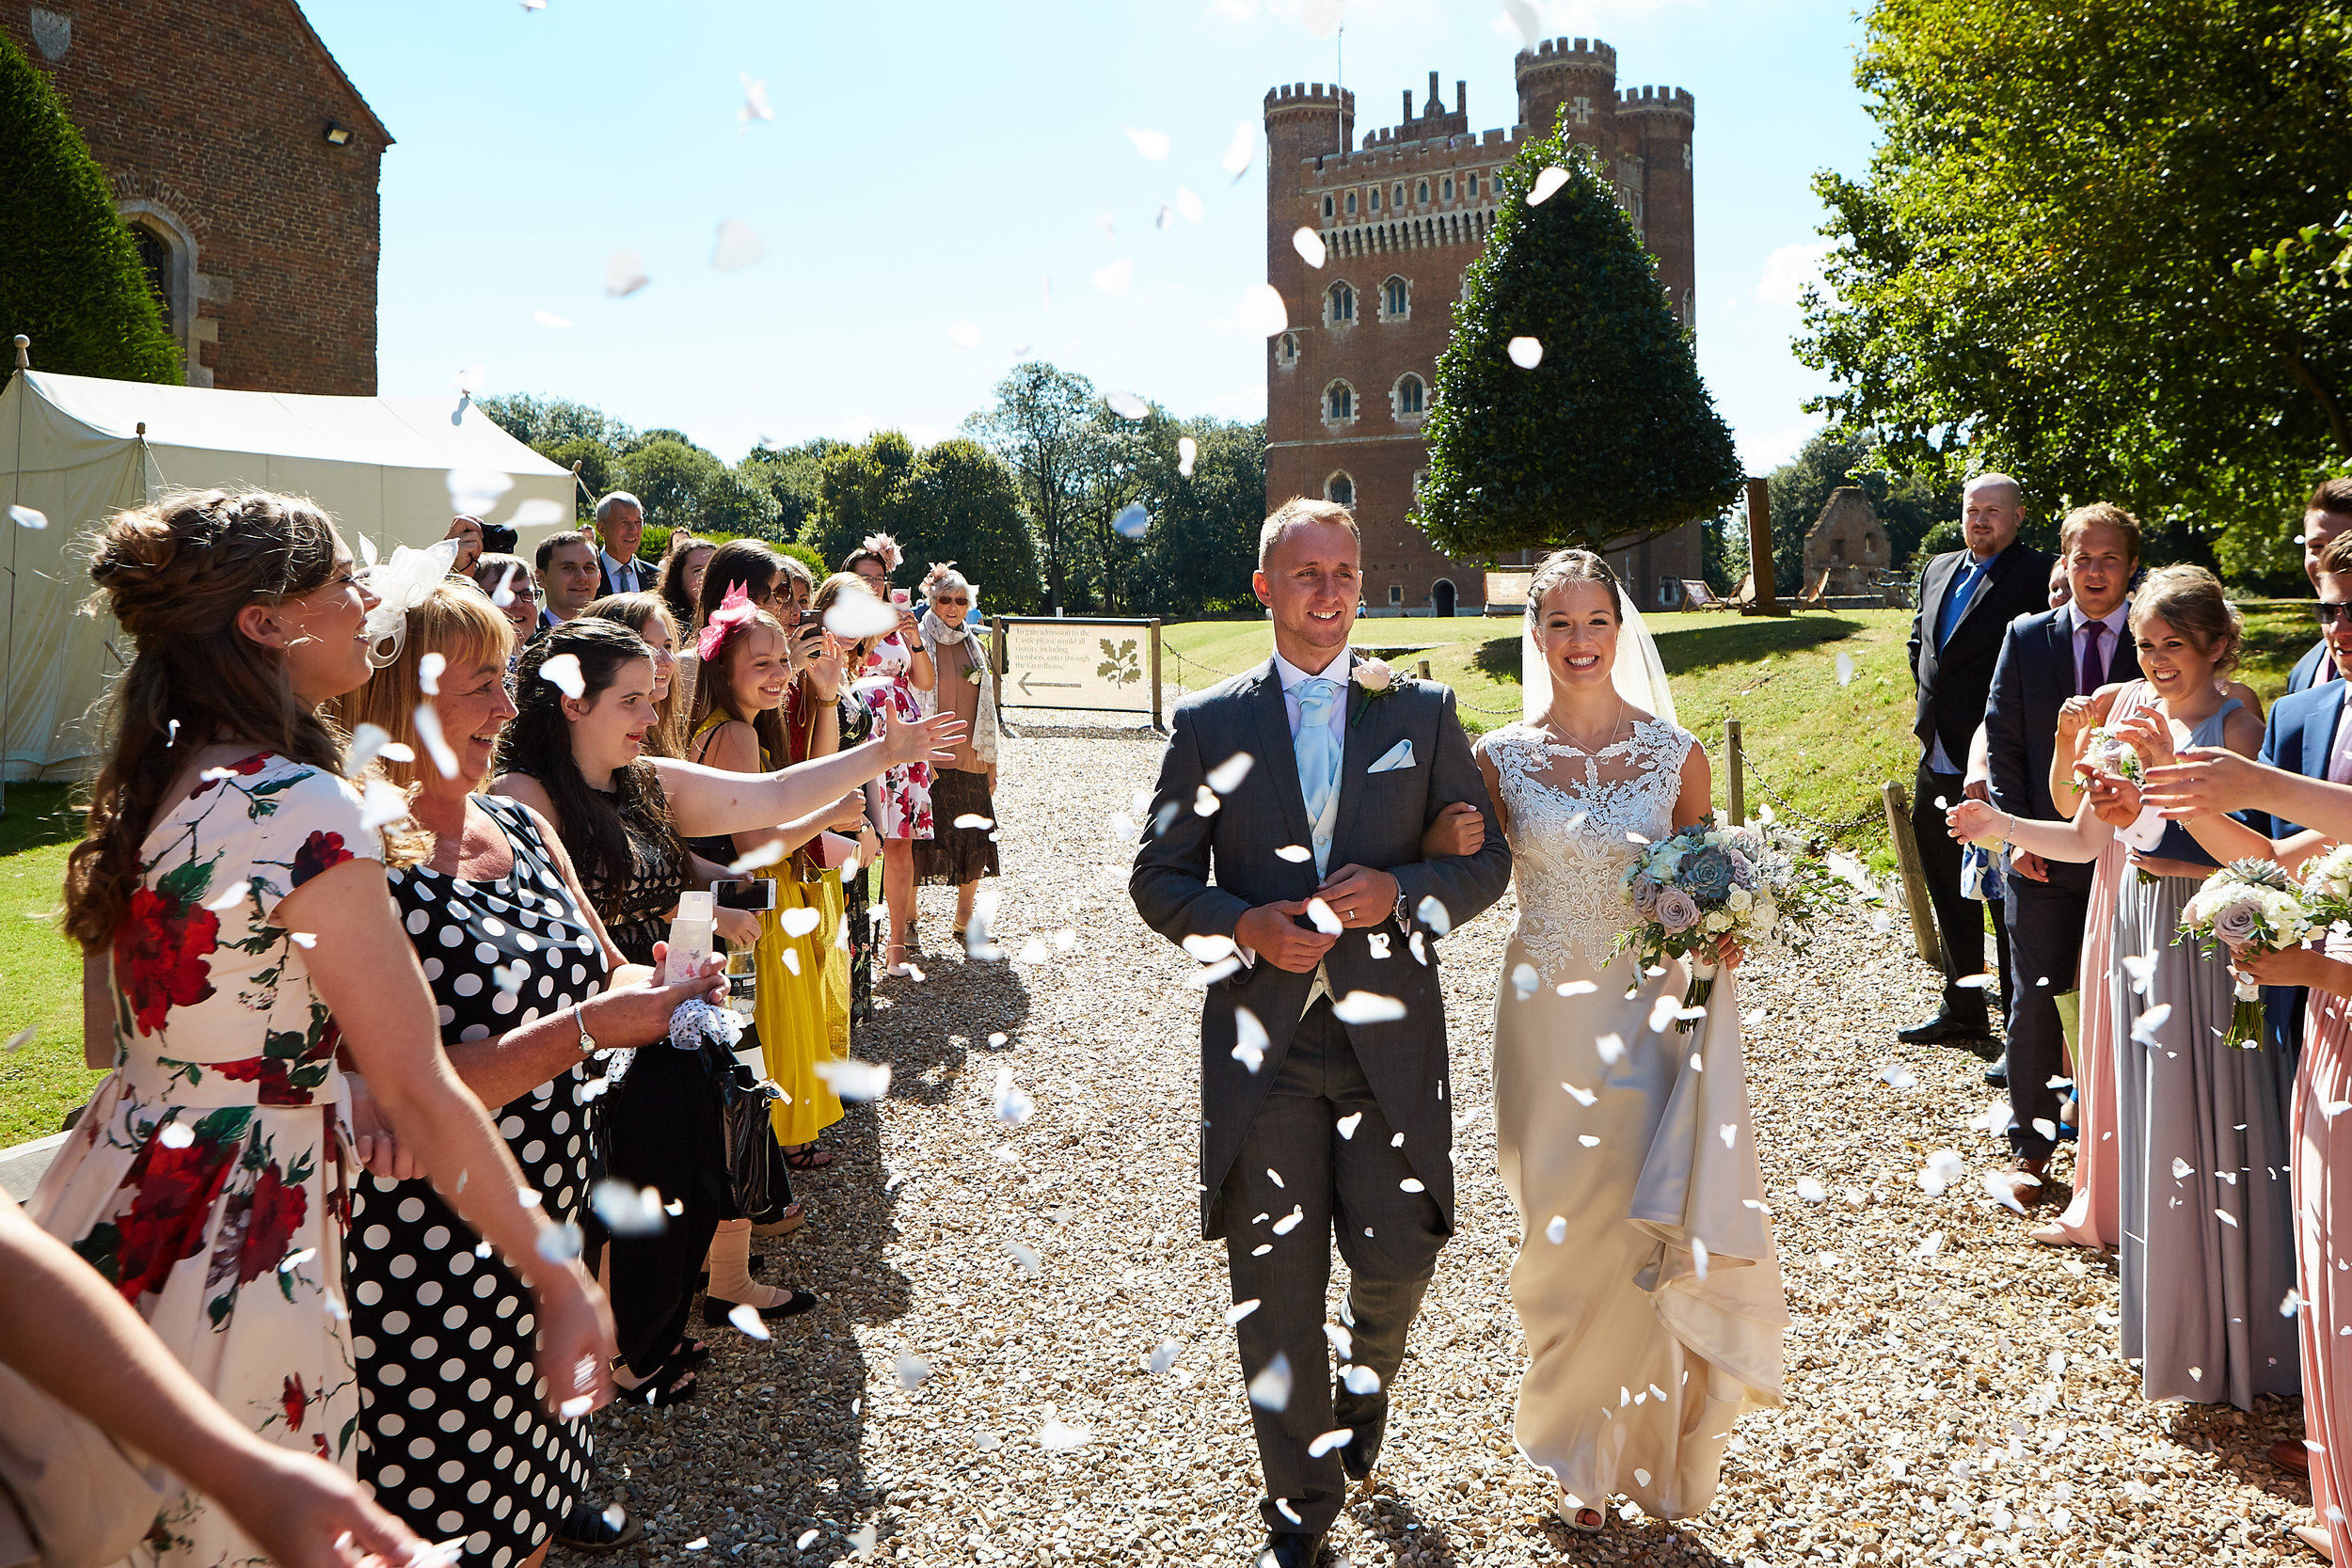 A wedding at Tattershall Castle in Lincolnshire by Lincolnshire wedding photographer 166 photography